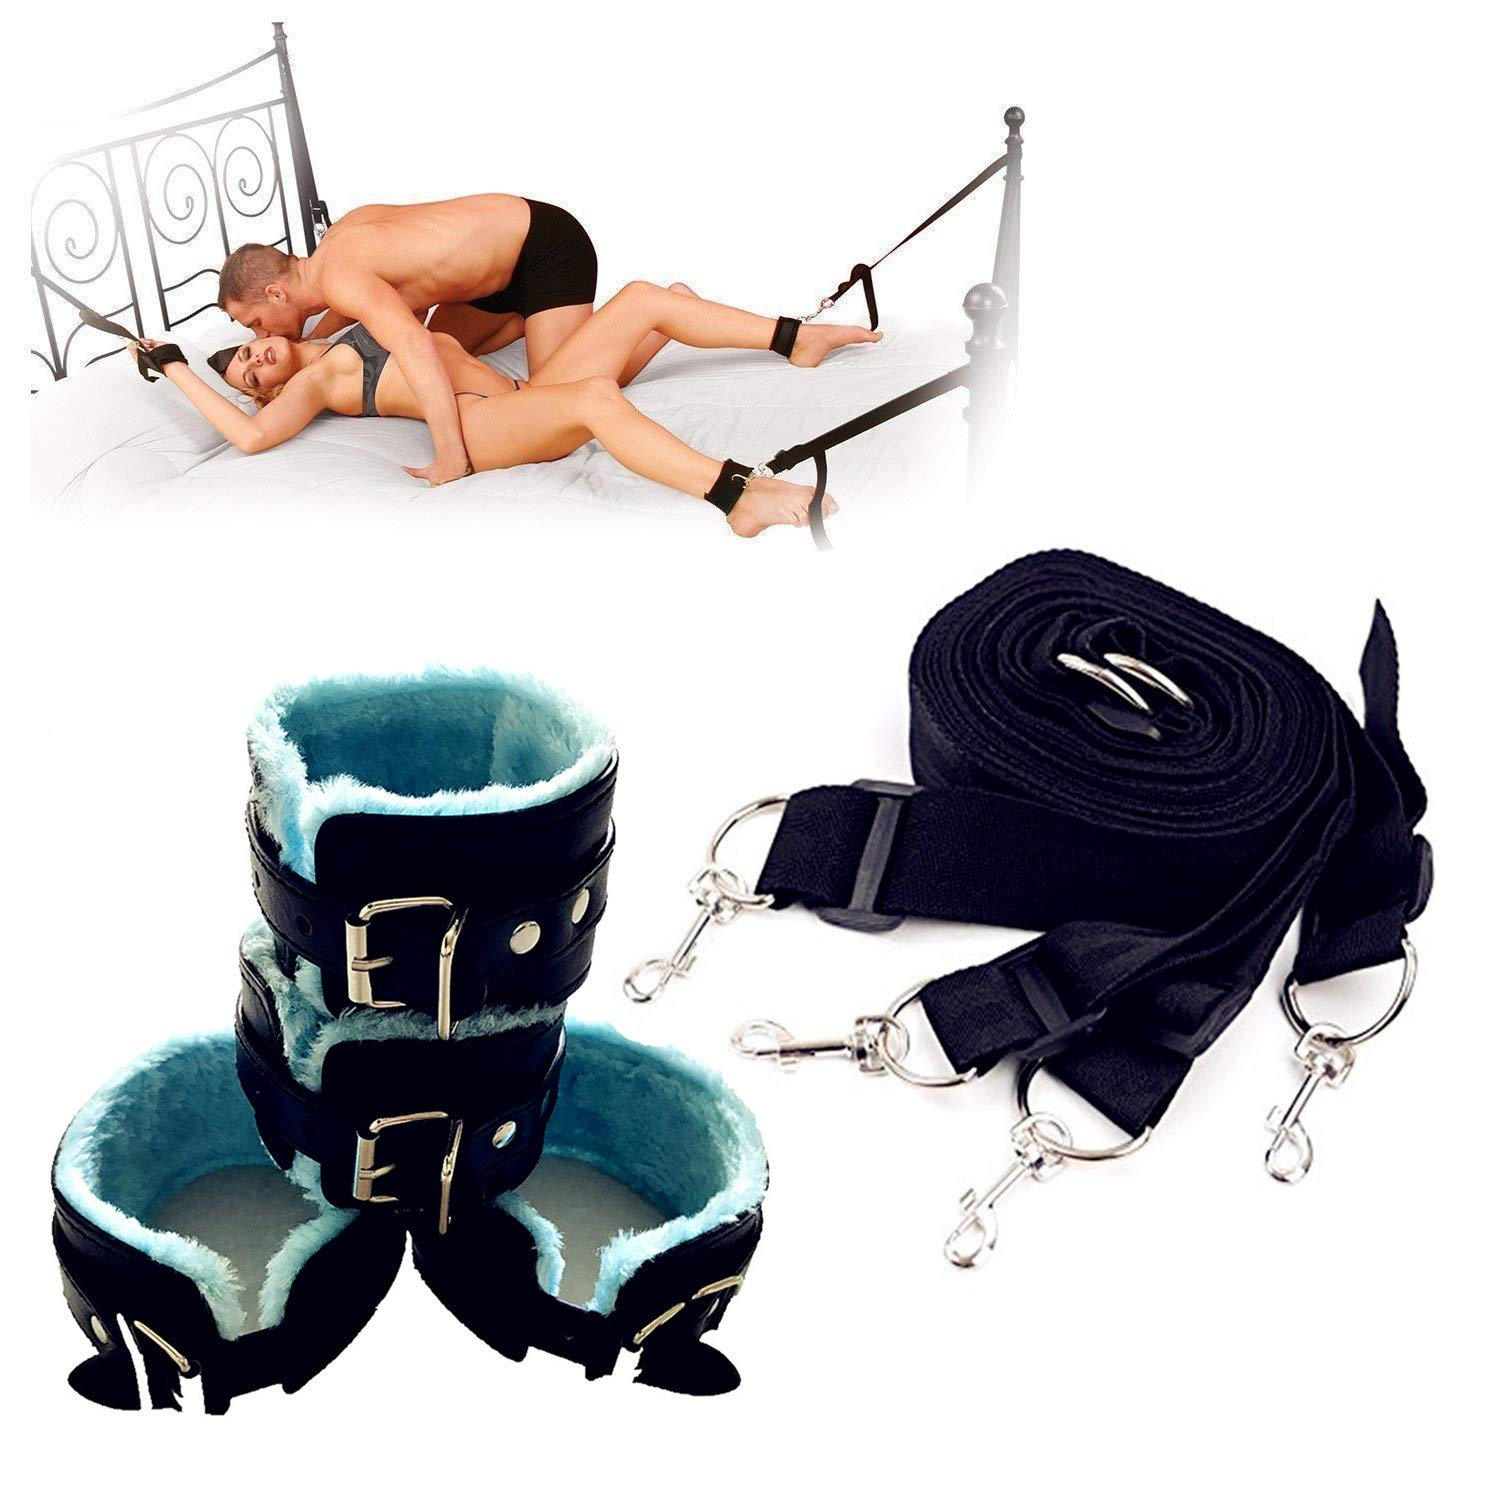 Iuvolux Arm and Leg Bed Restraint System Kit - Adjustable Velcro Wrist and Ankle Cuff - Fit Mattress - Use Under the Bed or Mattress